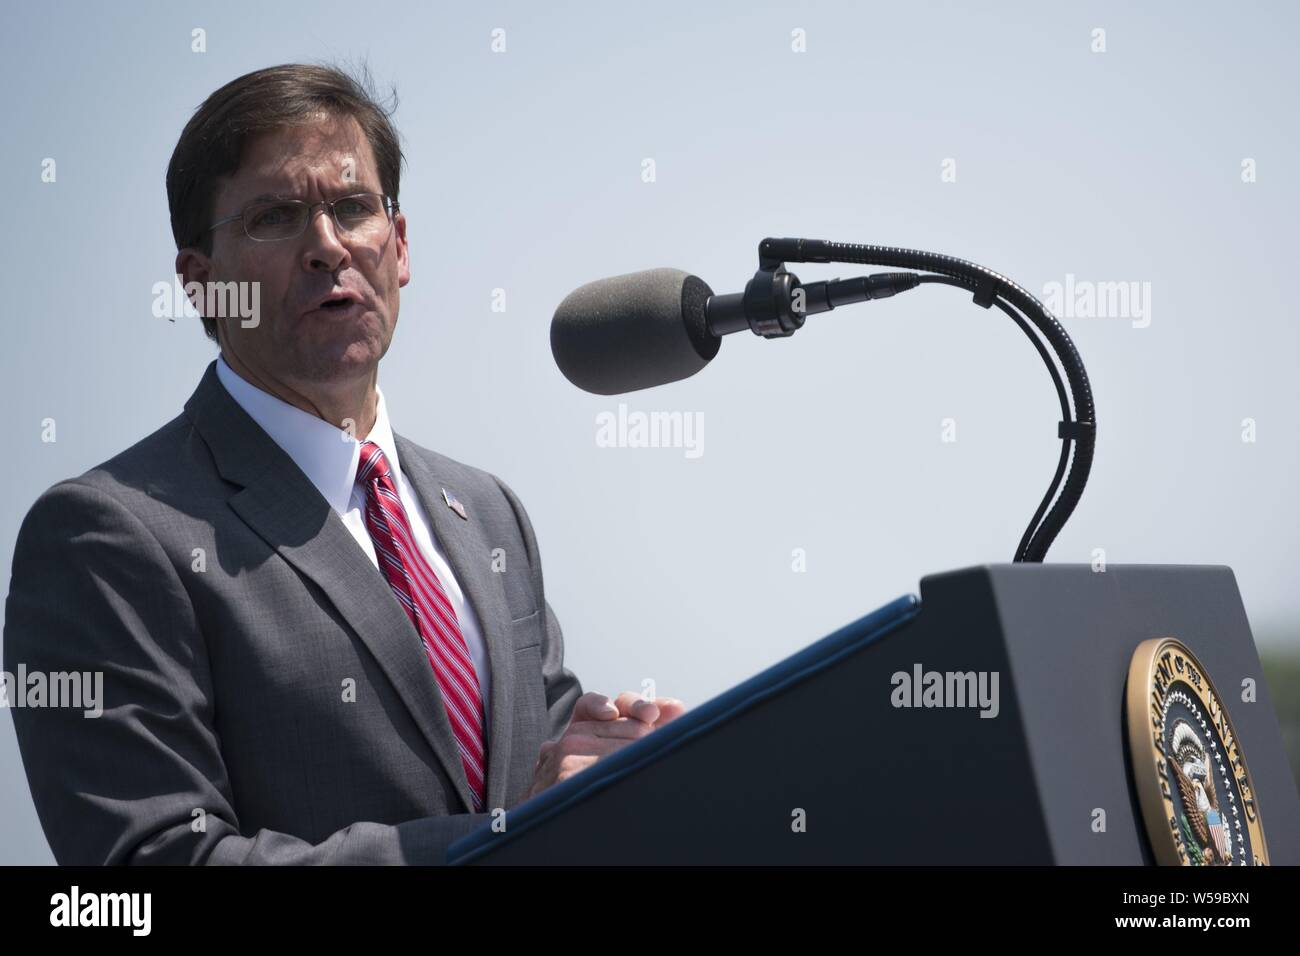 Secretary of Defense Dr. Mark T. Esper speaks during his Full Honors Welcome Ceremony at the Pentagon, Washington, D.C. July 25, 2019, July 25, 2019. (DoD photo by Lisa Ferdinando). () Stock Photo